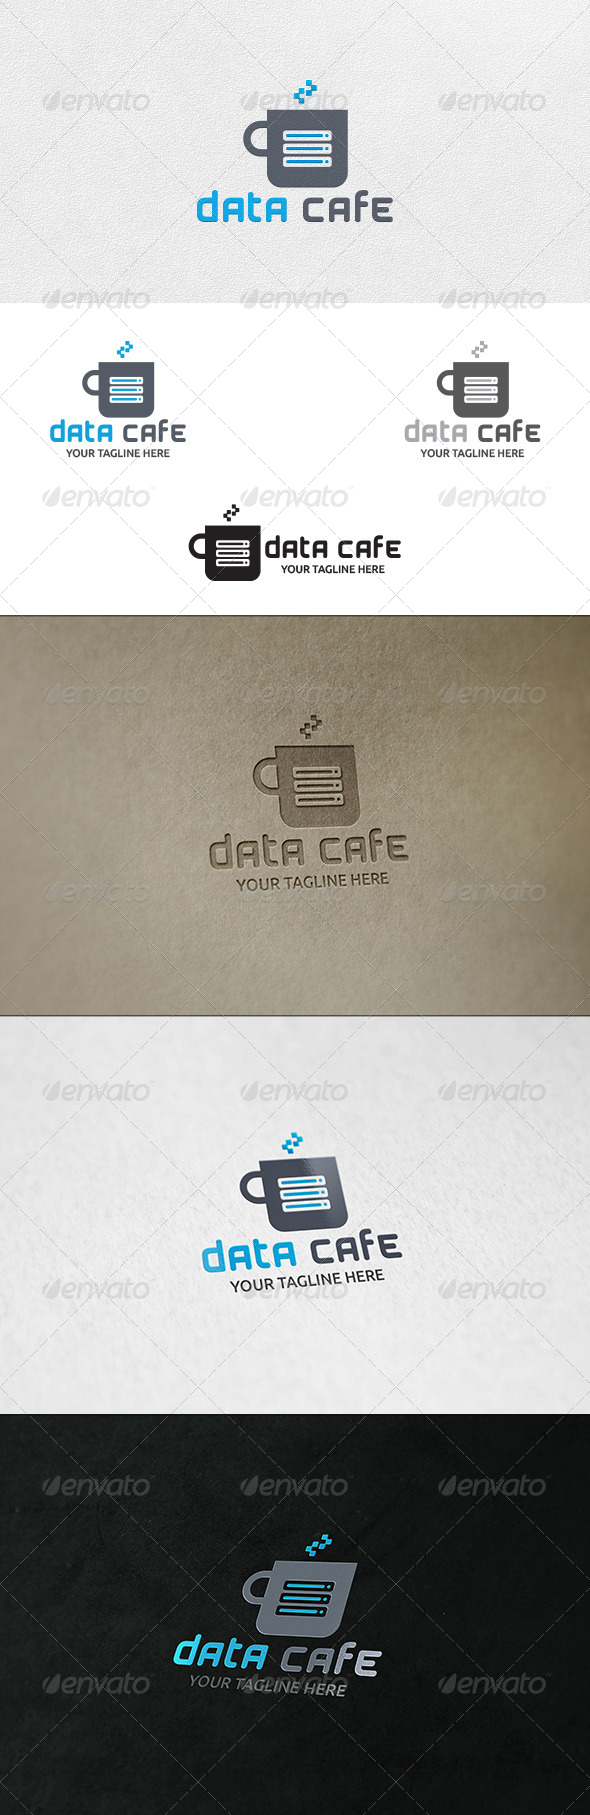 Data Cafe - Logo Template - Symbols Logo Templates